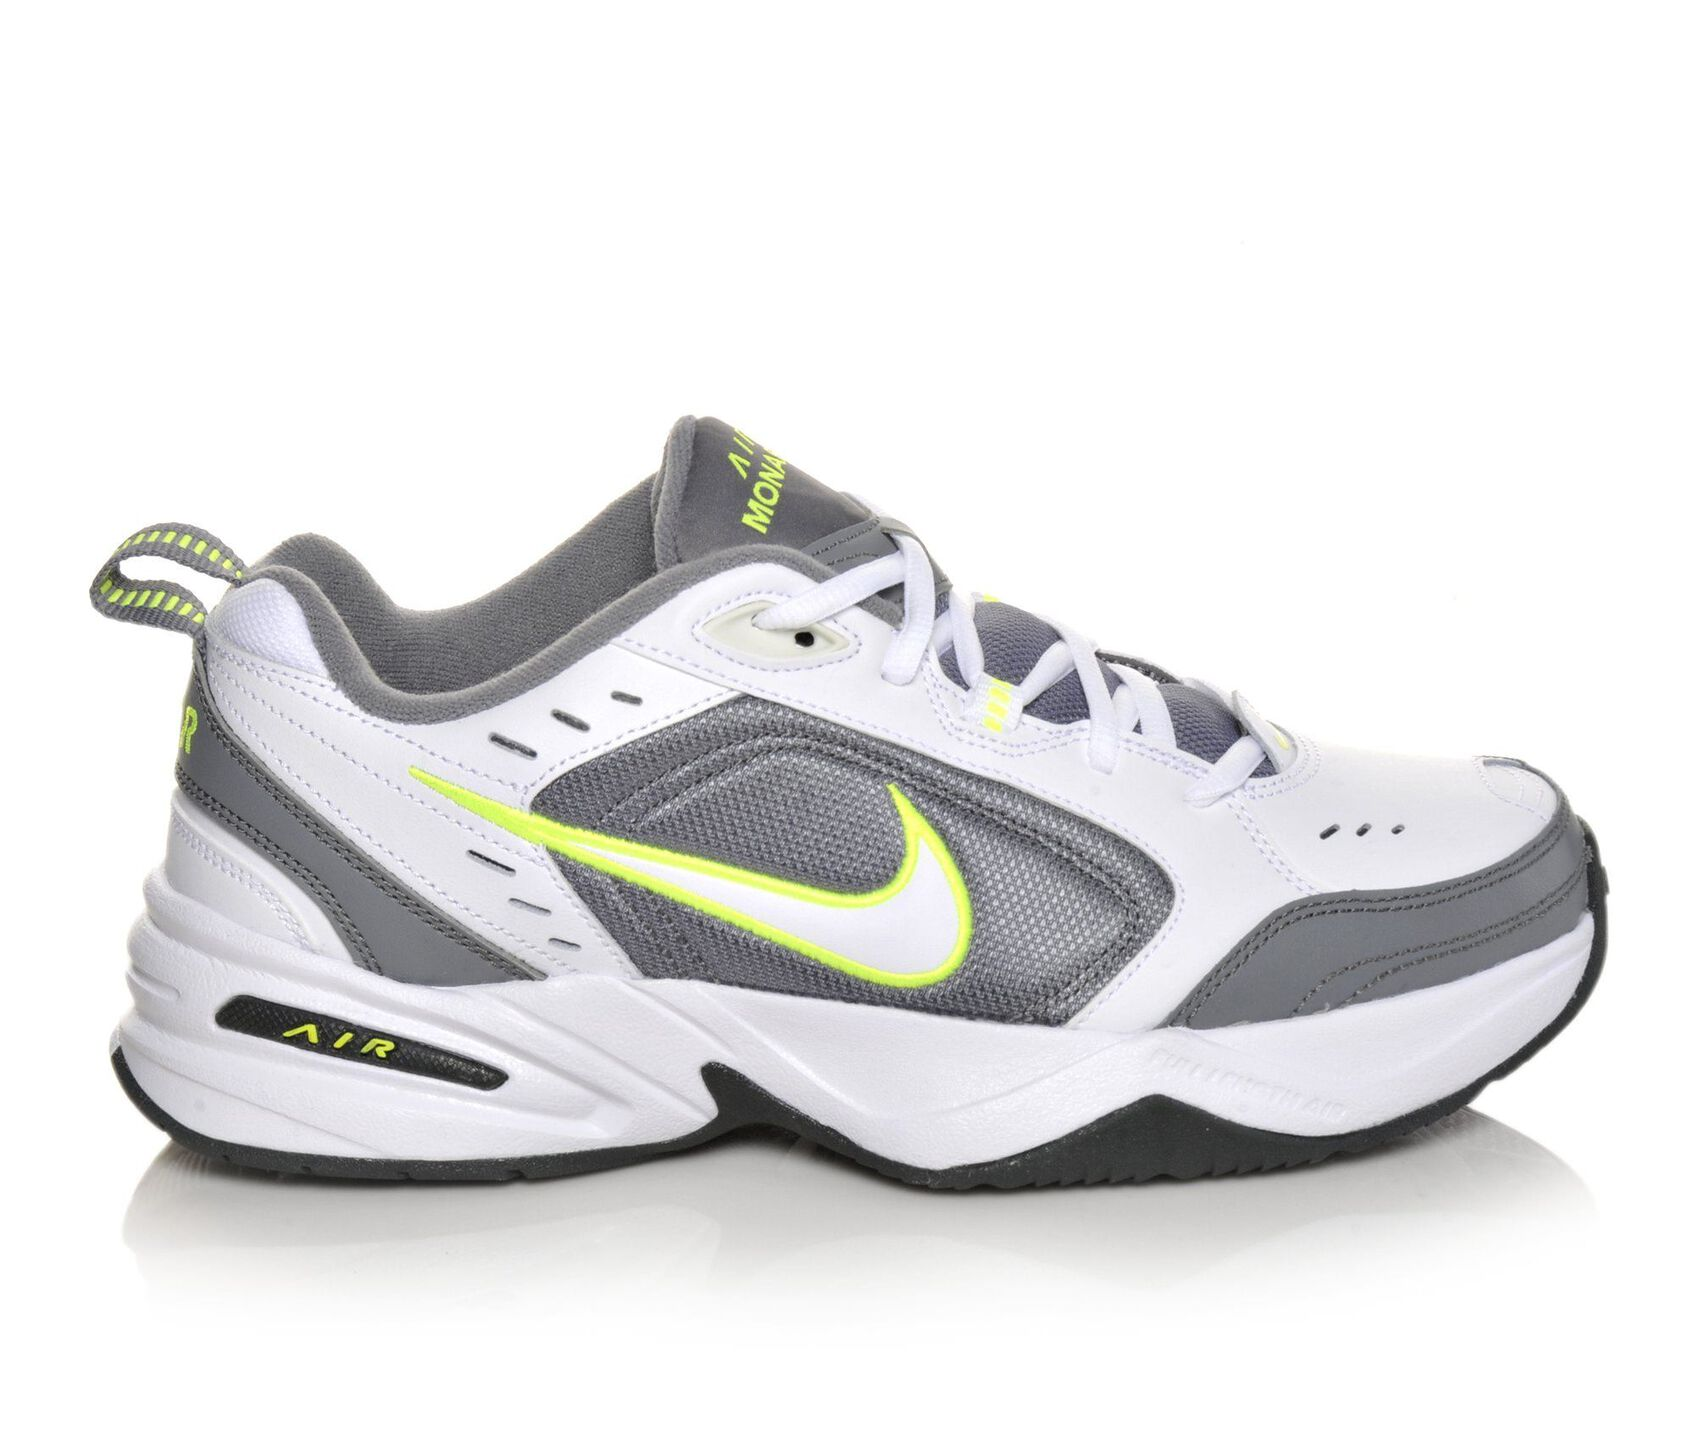 fa34a16806054a ... Nike Air Monarch IV Training Shoes. Carousel Controls